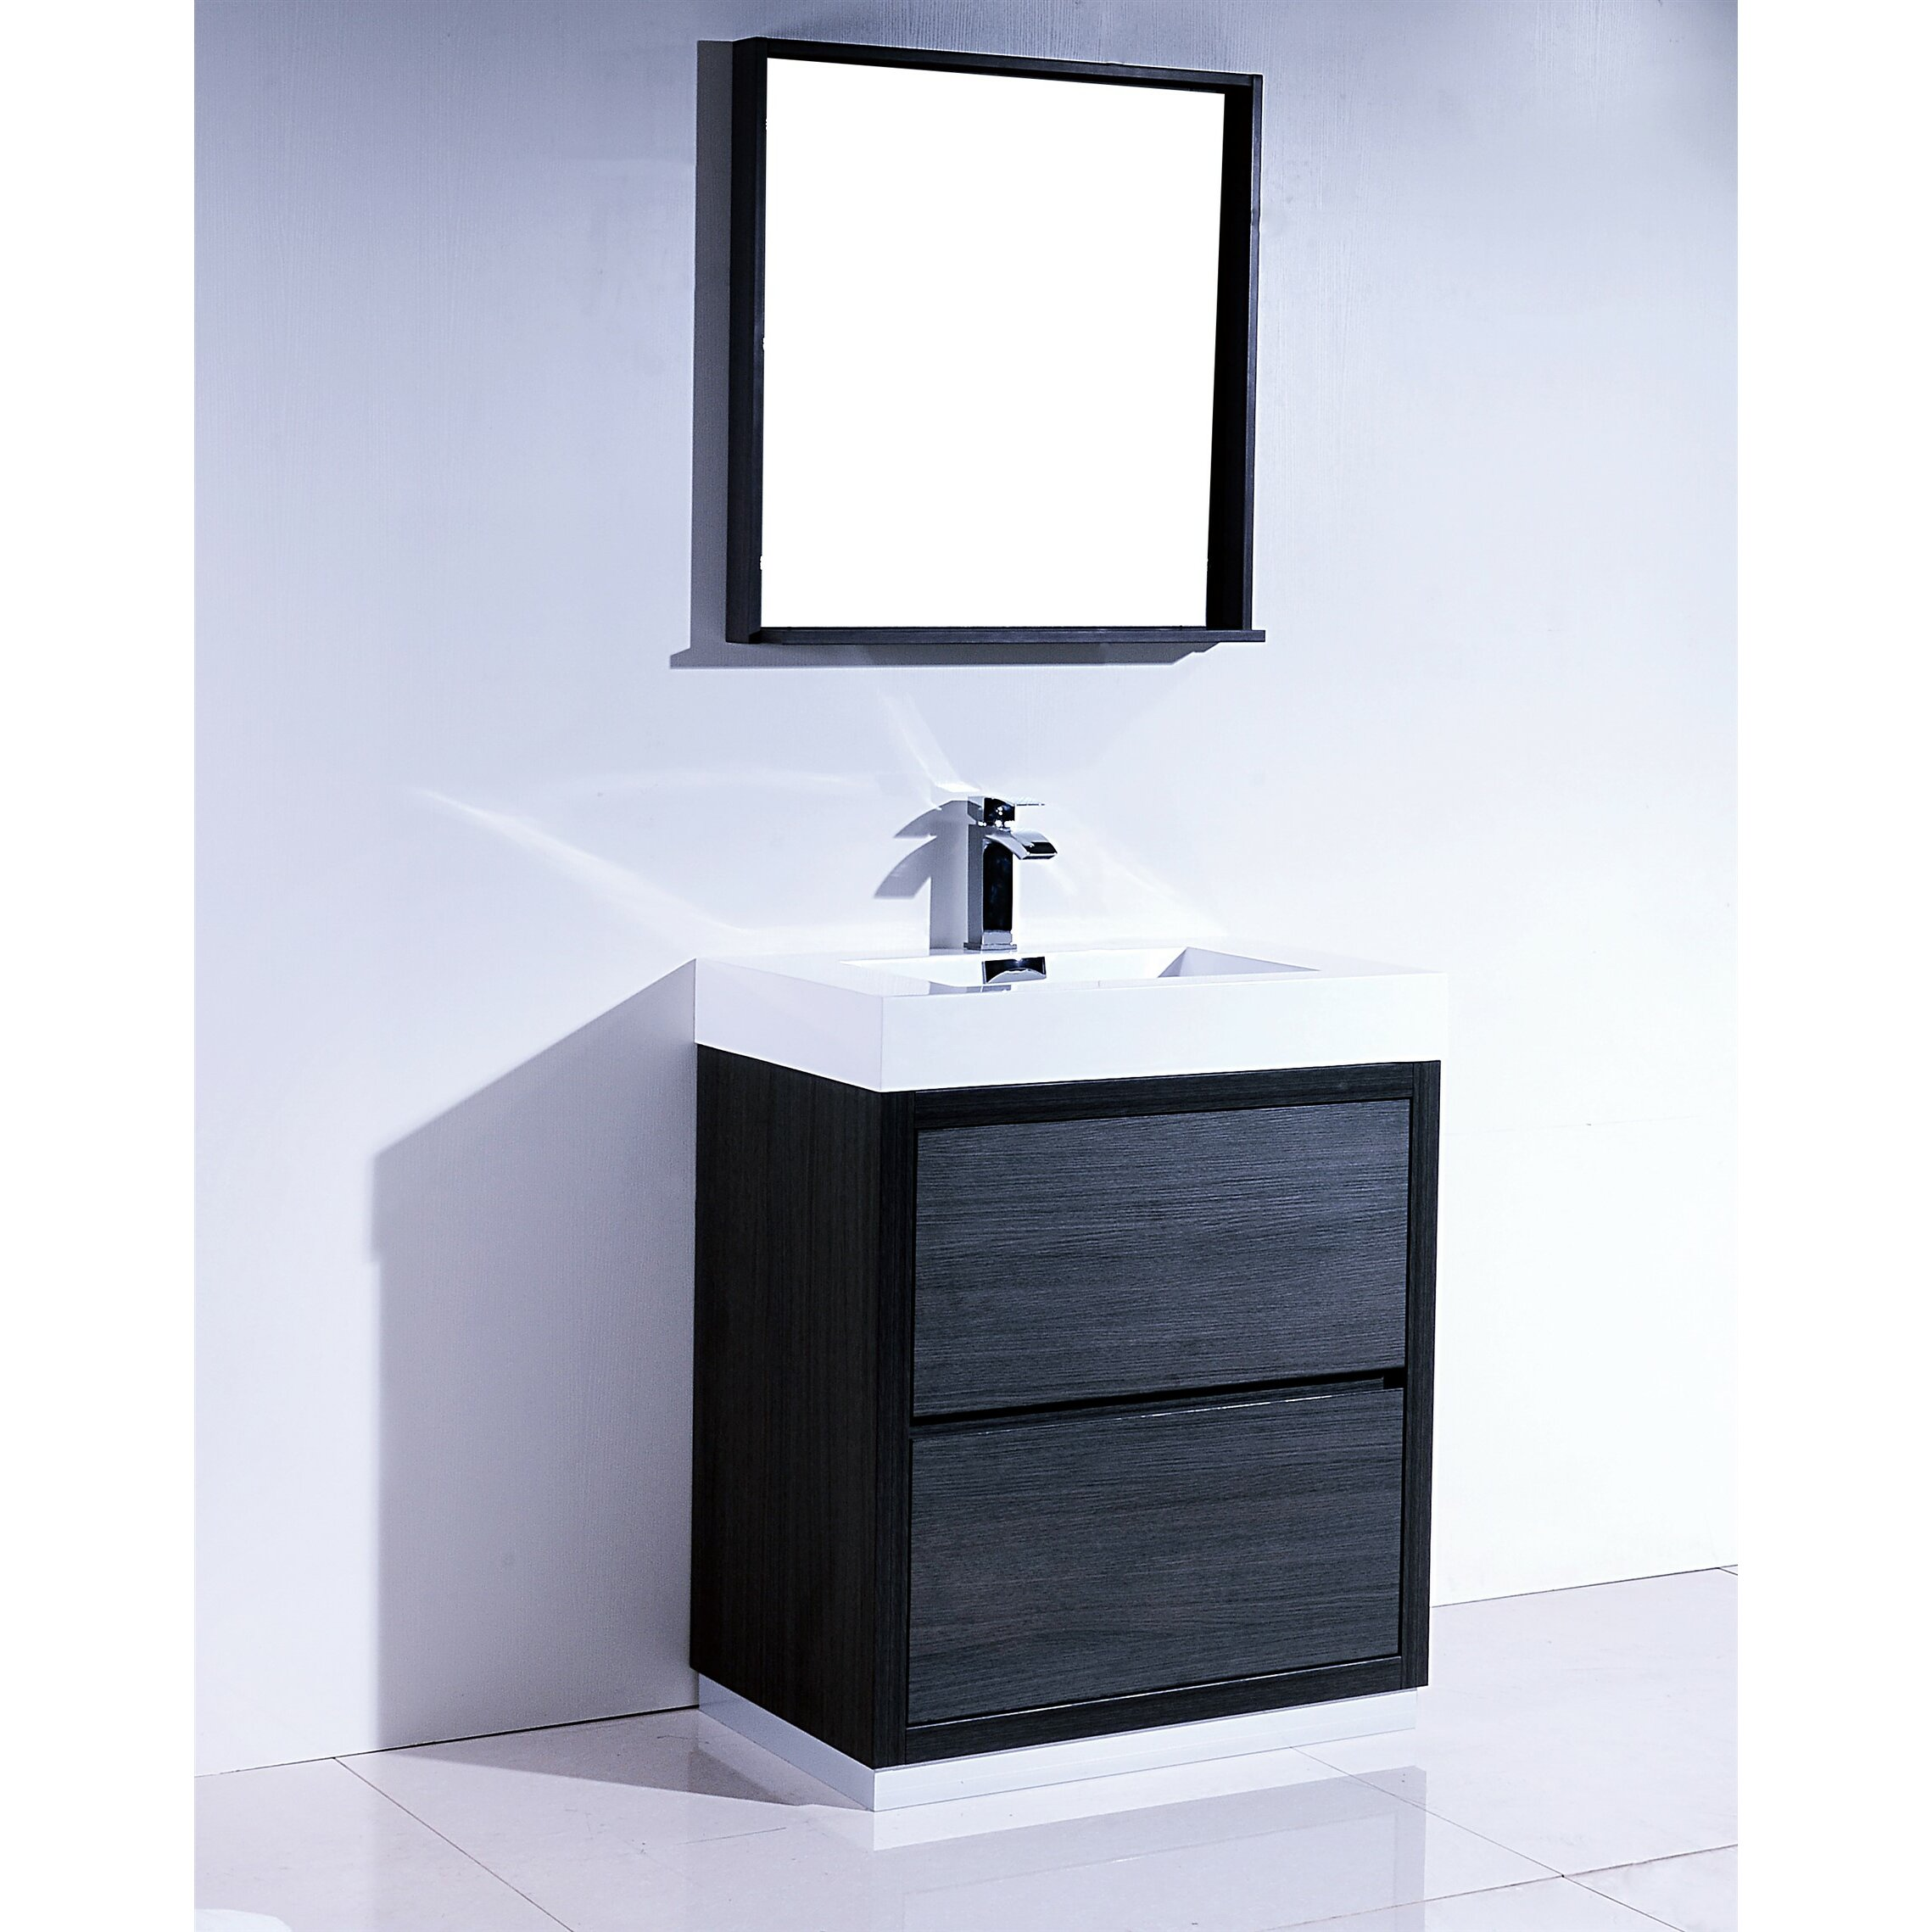 Bathroom Single Vanity Bliss 30 Single Free Standing Modern Bathroom Vanity Set